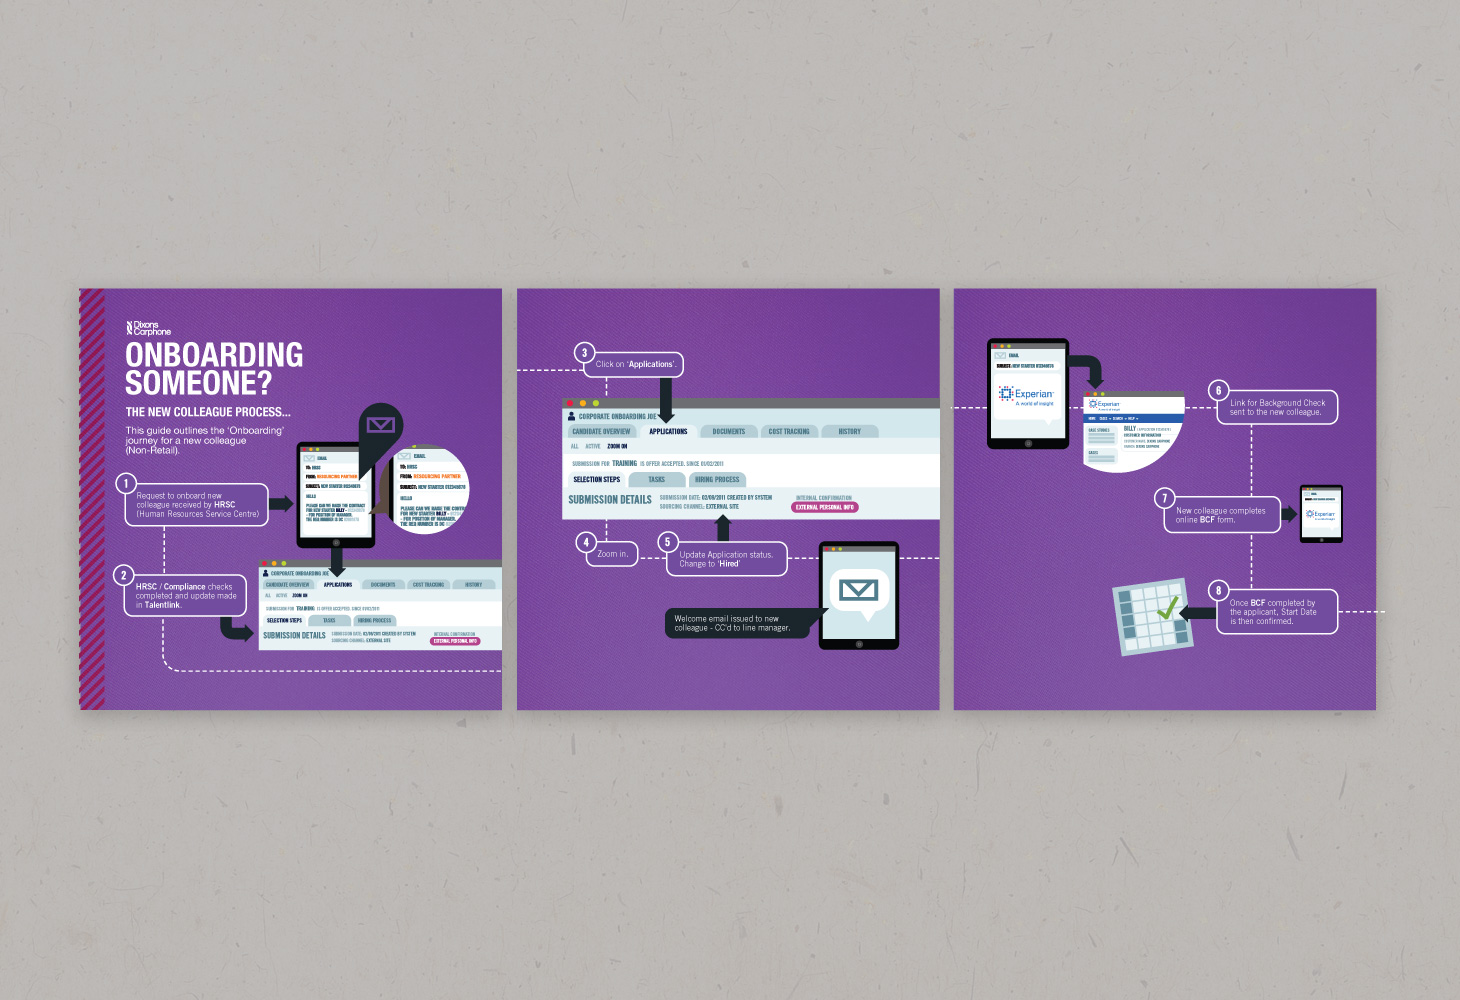 Dixons Carphone - New Colleague User Guide - Onboarding someone